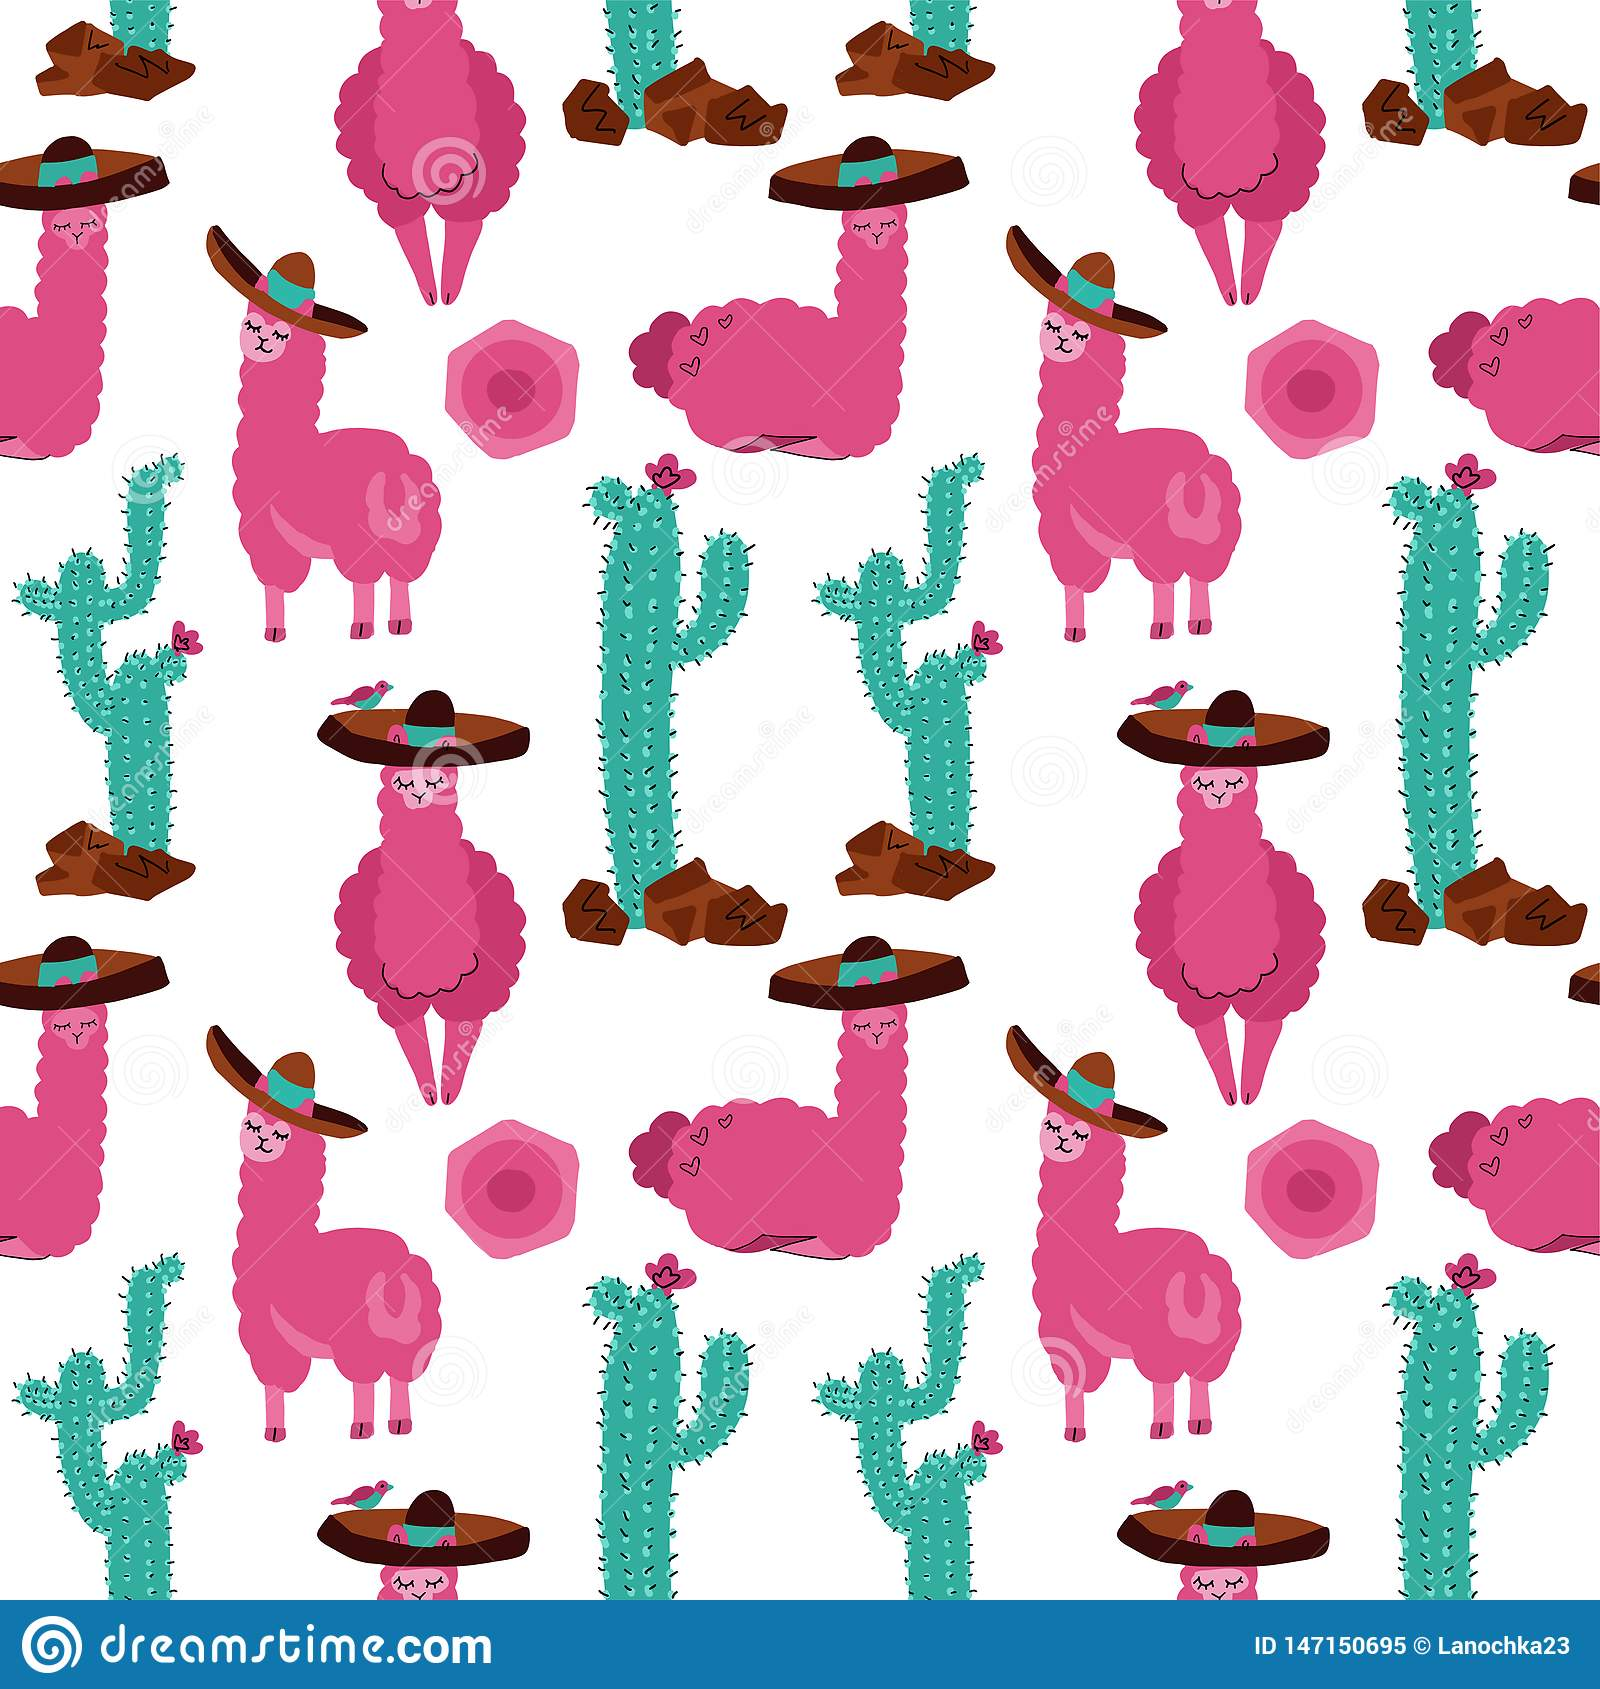 Seamless pattern with llama in sombrero, cactus and hand drawn elements. Creative childish texture. Great for fabric, textile hand